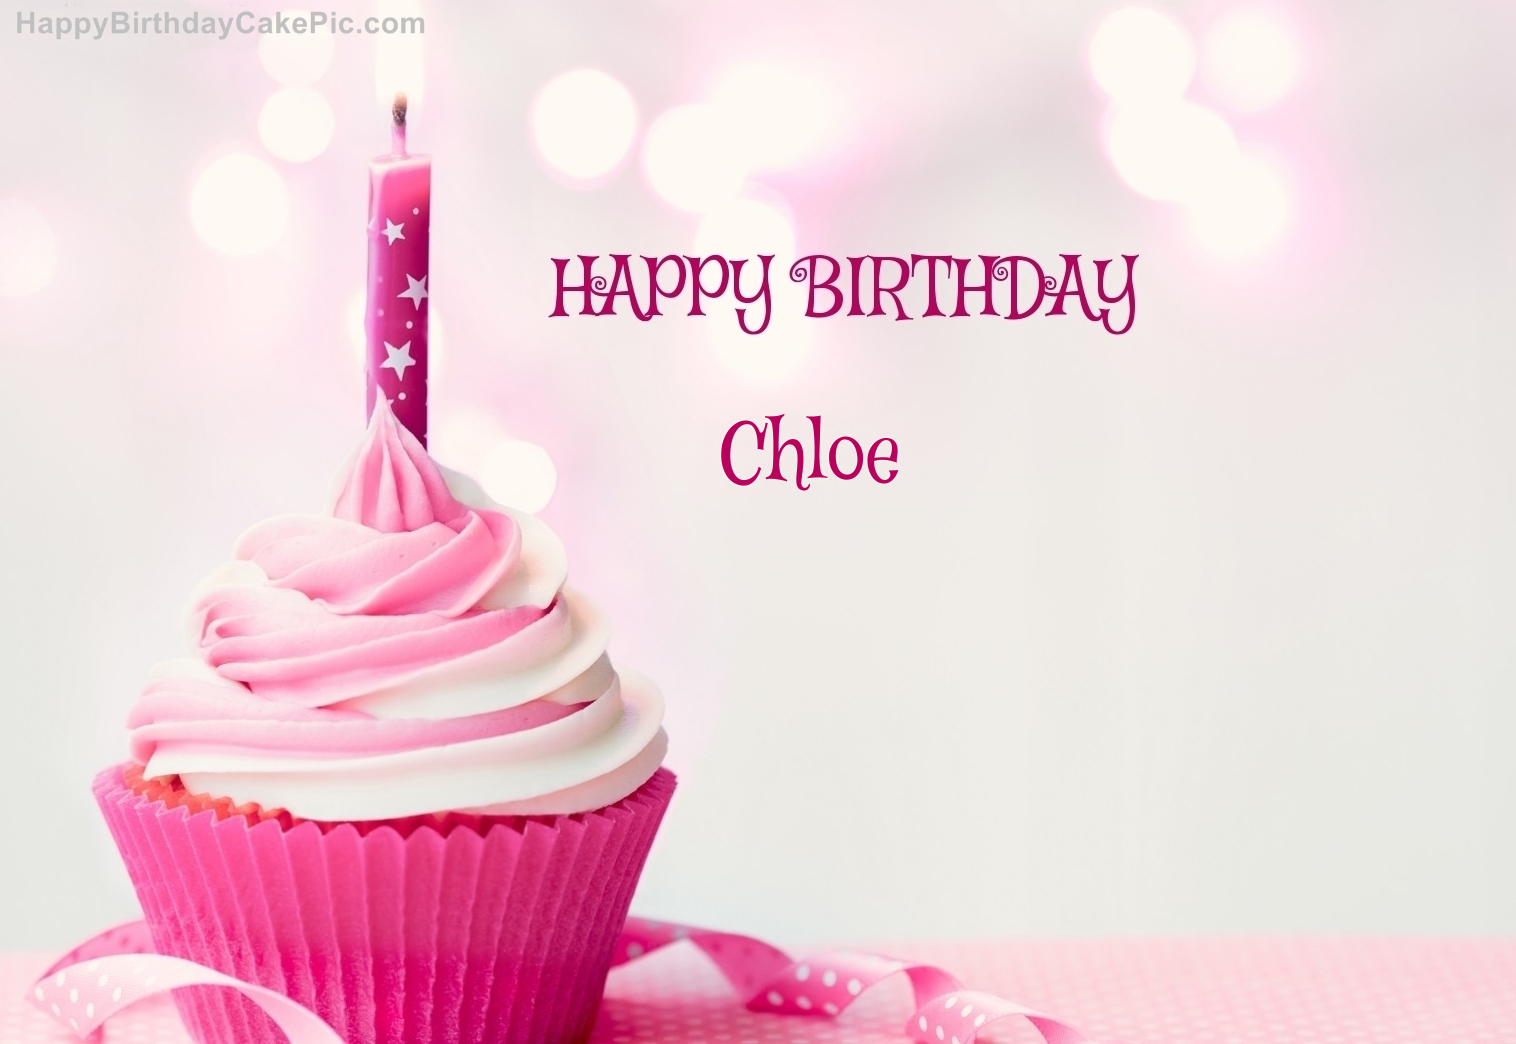 ️ Happy Birthday Cupcake Candle Pink Cake For Chloe